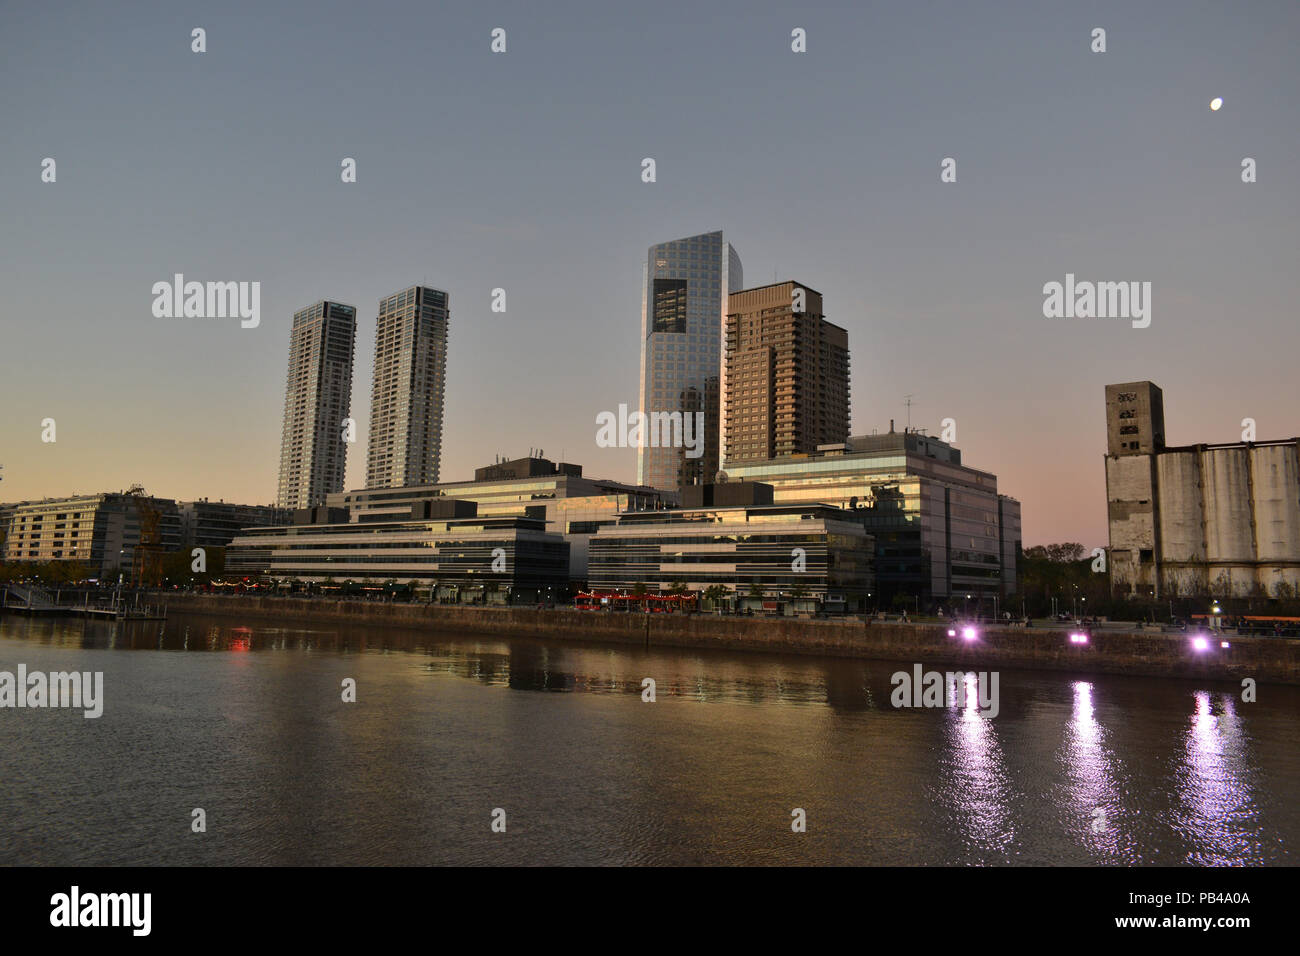 harbour and skyline of Puerto Madero at sunset, Buenos Aires, Argentina - Stock Image